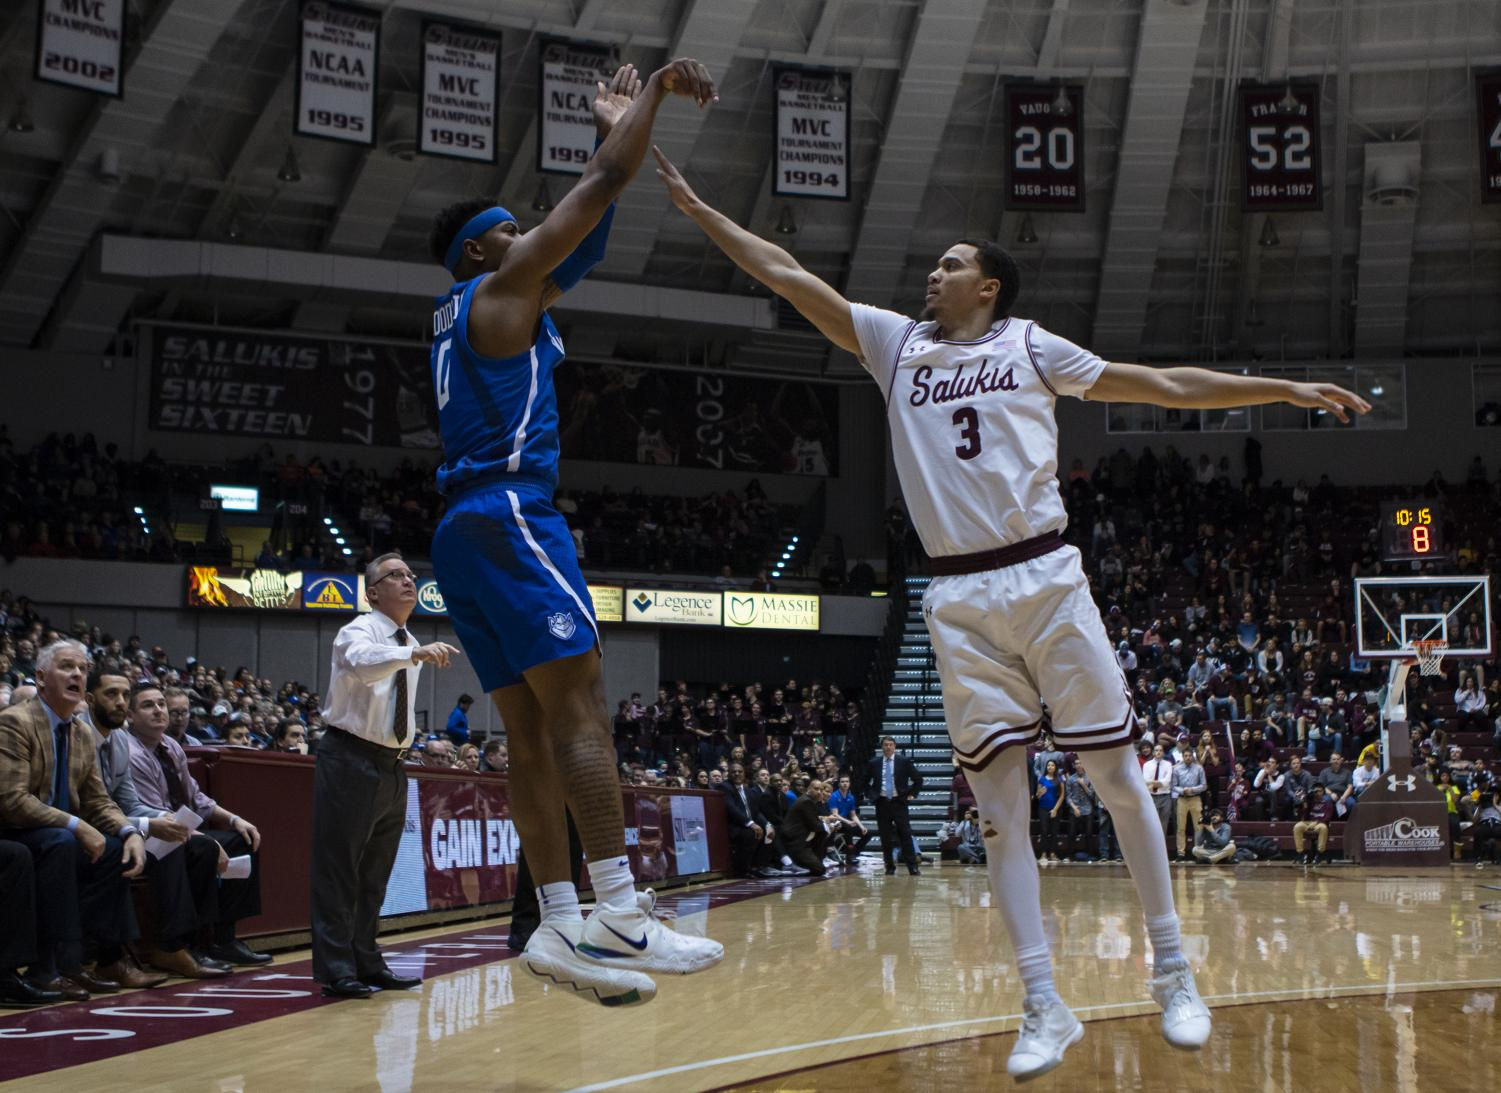 SIU graduate student Marcus Bartley, attempts to block a shot from Jordan Goodwin, at the SIU vs. SLU basketball game on Wednesday, Dec. 5, 2018. (Carson VanBuskirk | @carsonvanbDE)